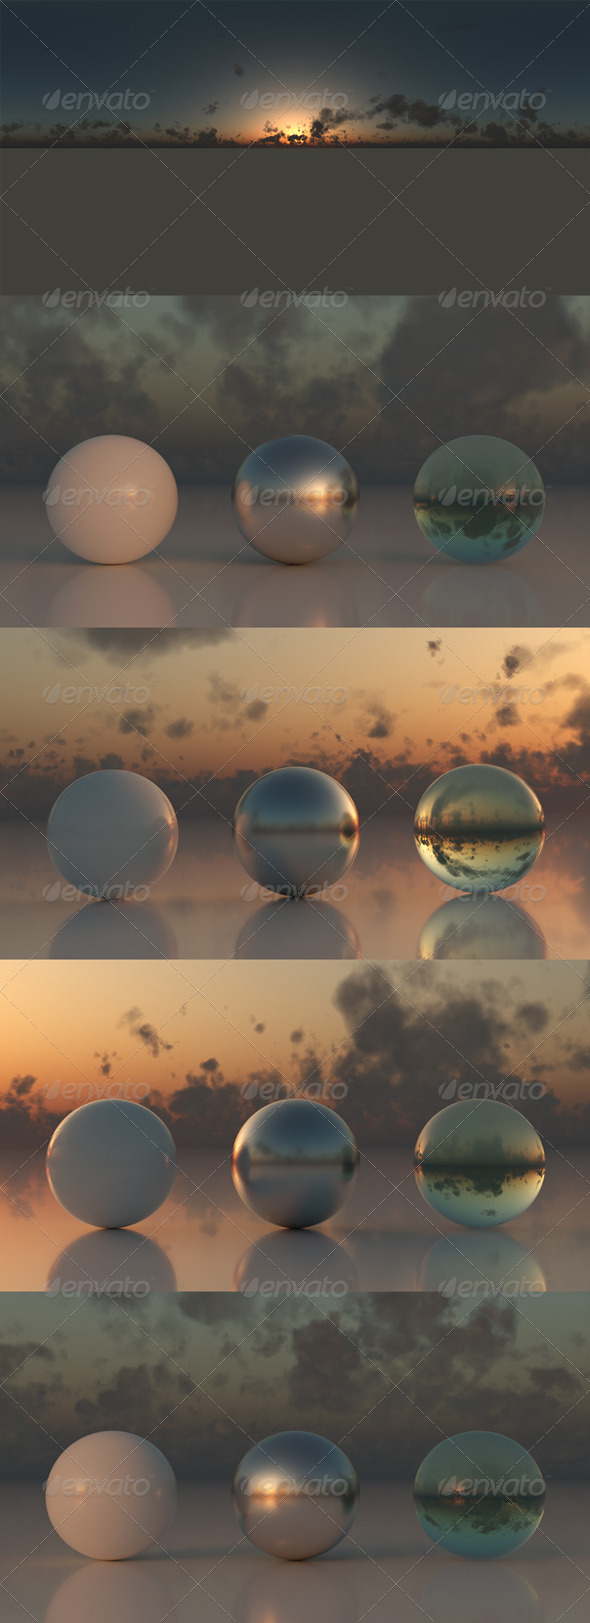 SC-Skydomes 002-SunSet - 3DOcean Item for Sale